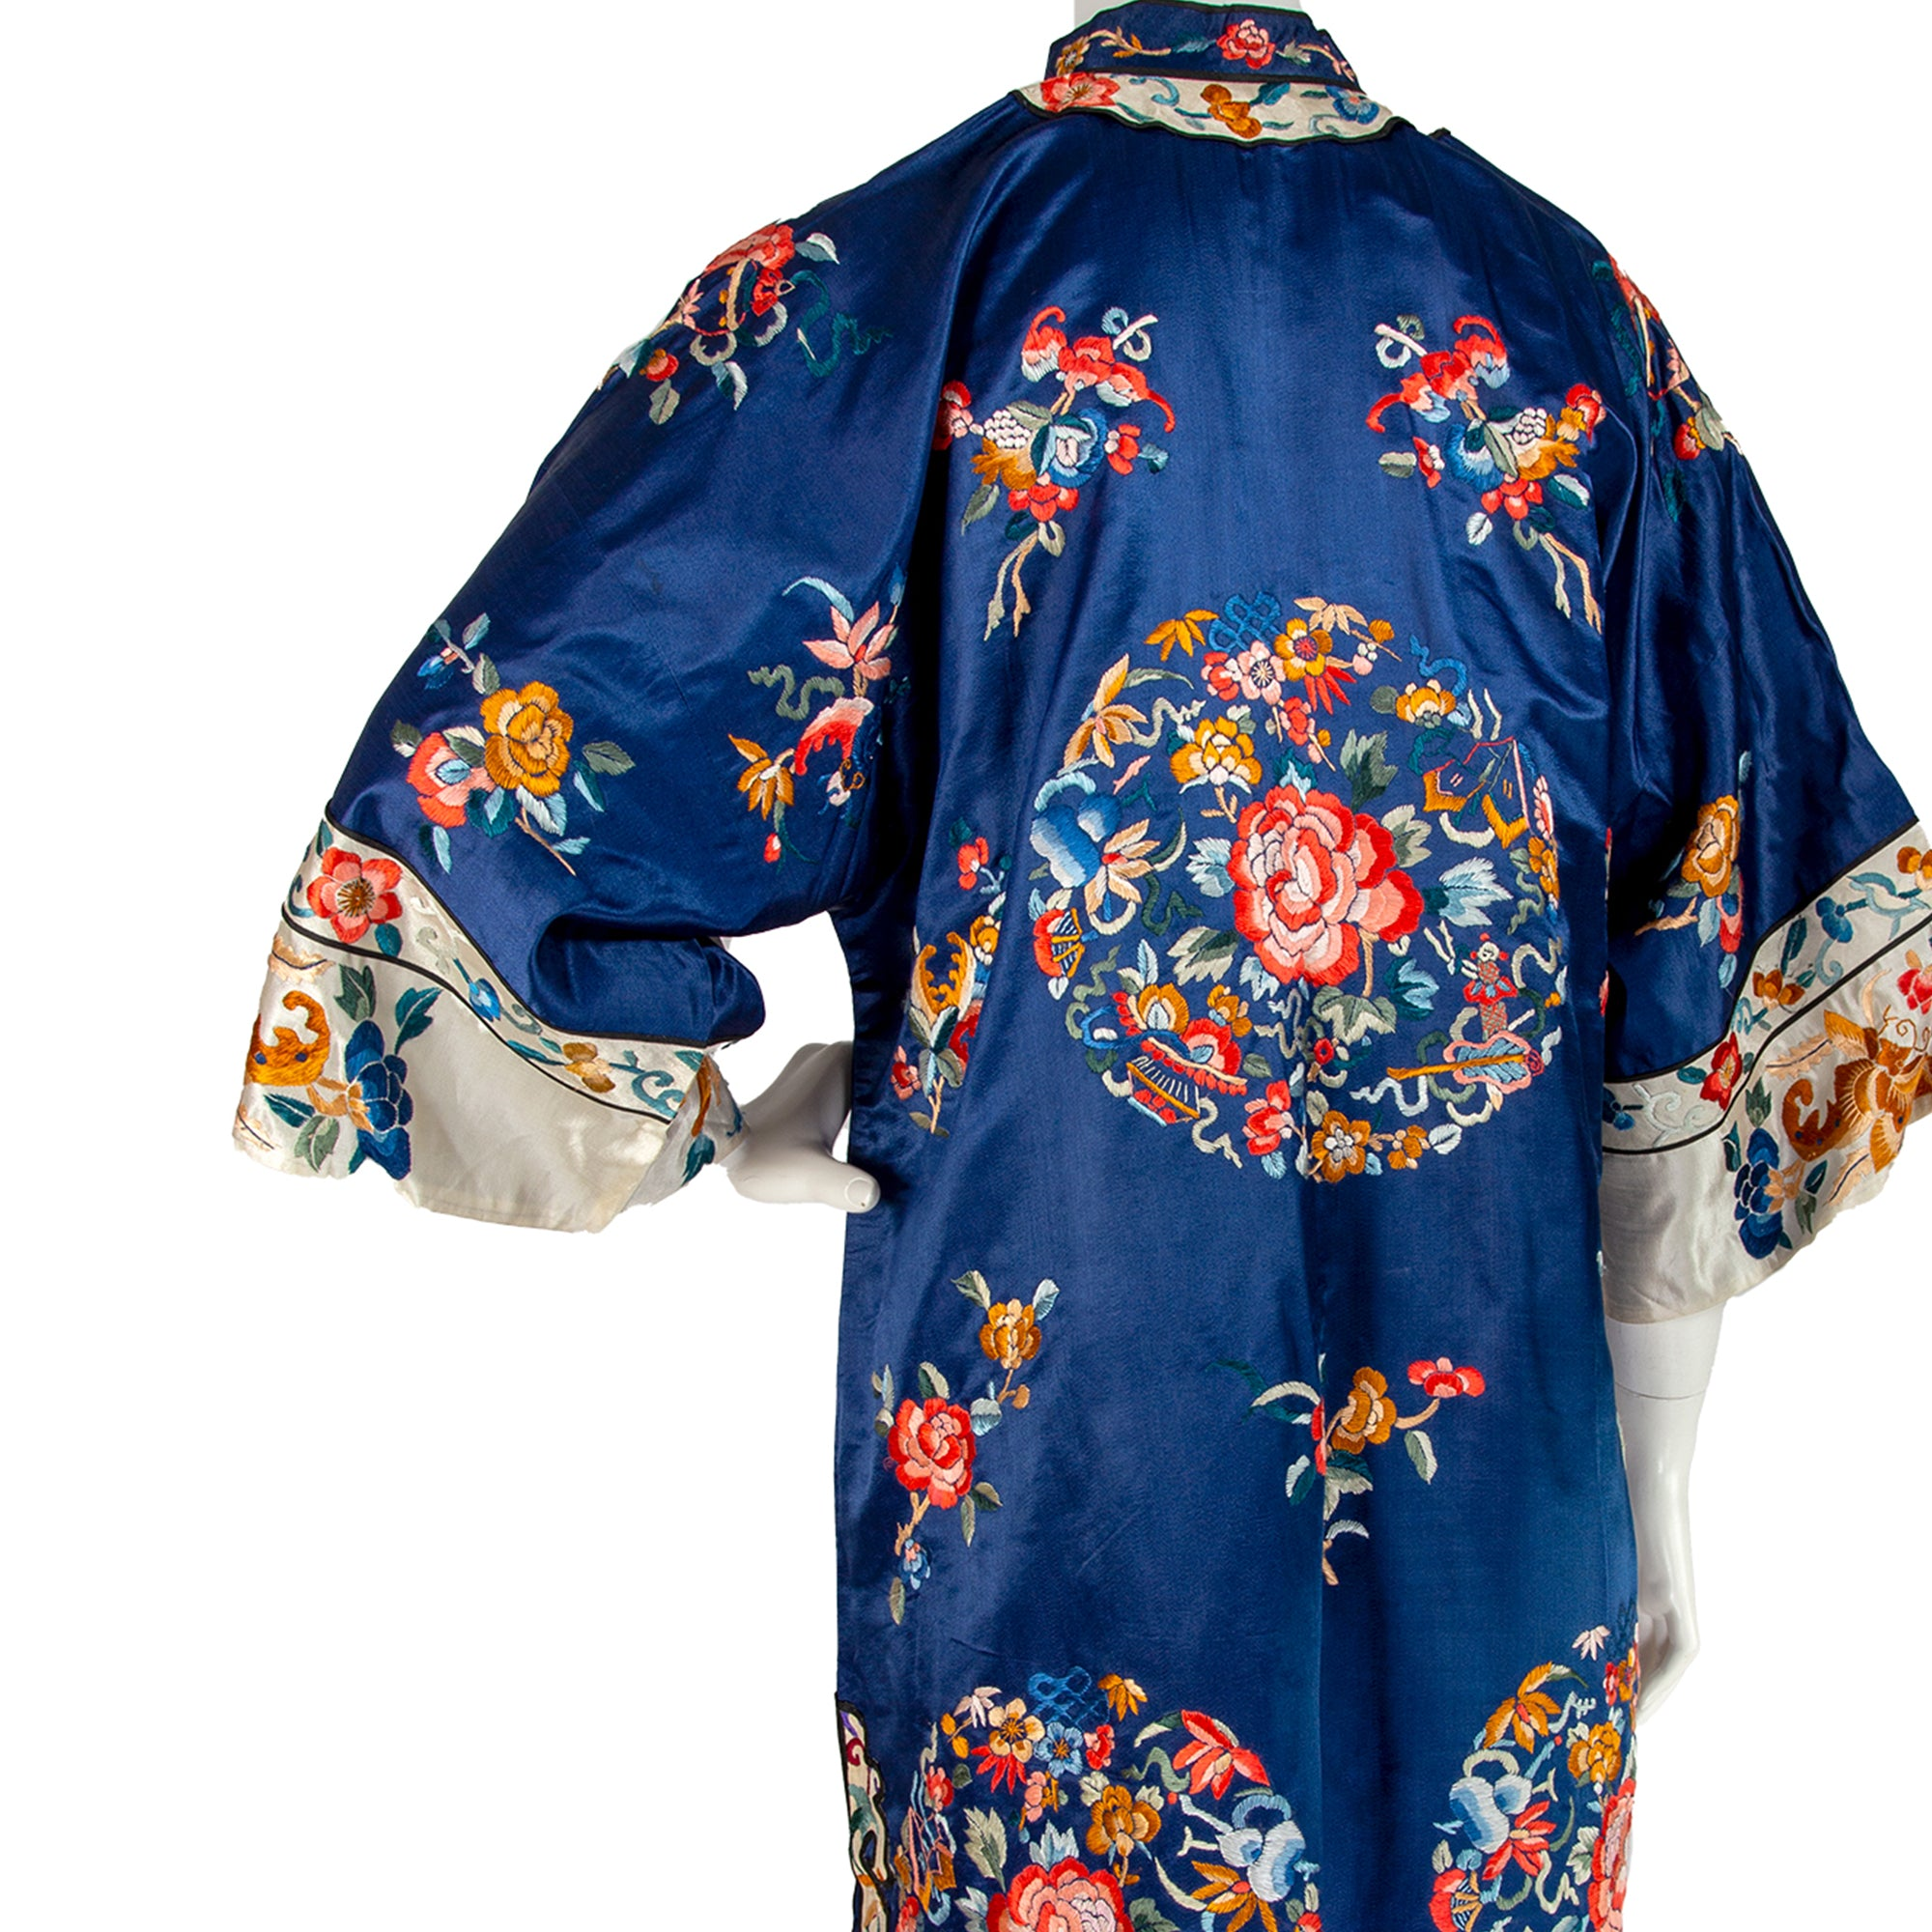 Qing Dynasty Chinese Silk Robe⁠ Early 20th Century